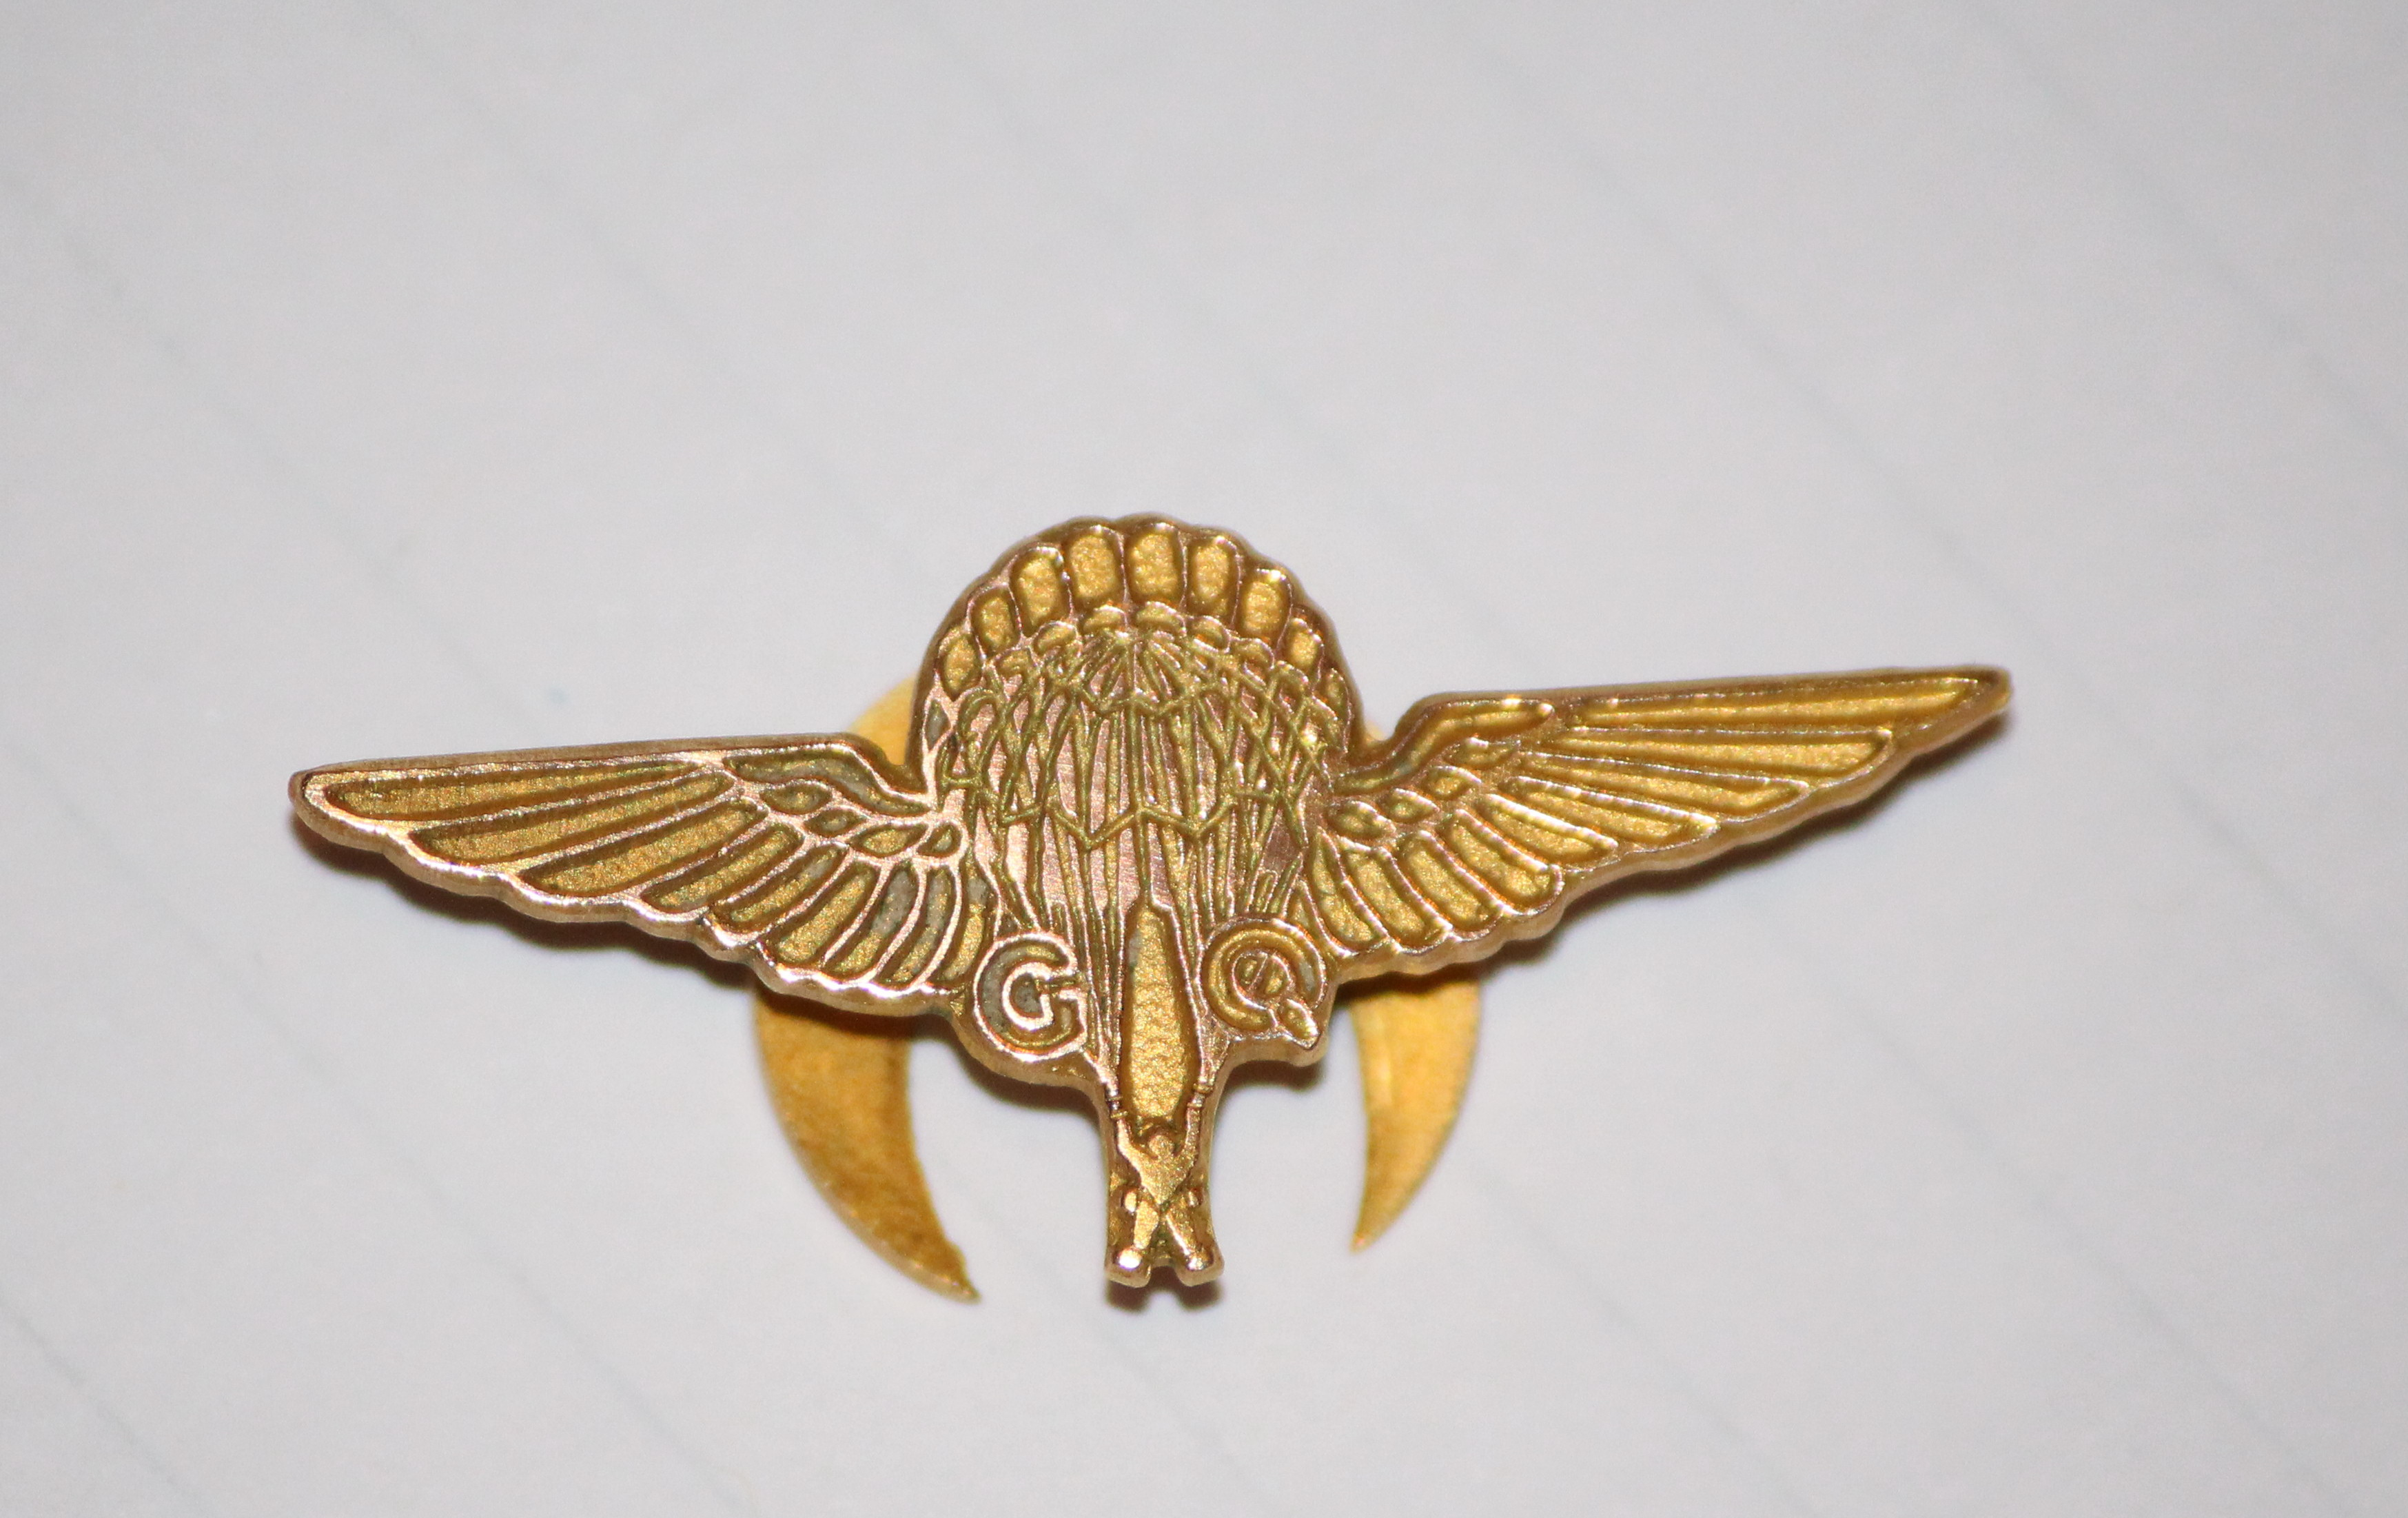 """Badge– Given to airmen in the War who had parachuted out of an airplane . Inscribed on back """"SAVED MY LIFE"""". and the RCAF airman's name and rank and date. Given to airmen who had bailed out by GQ Parachute Co. Ltd Woking."""